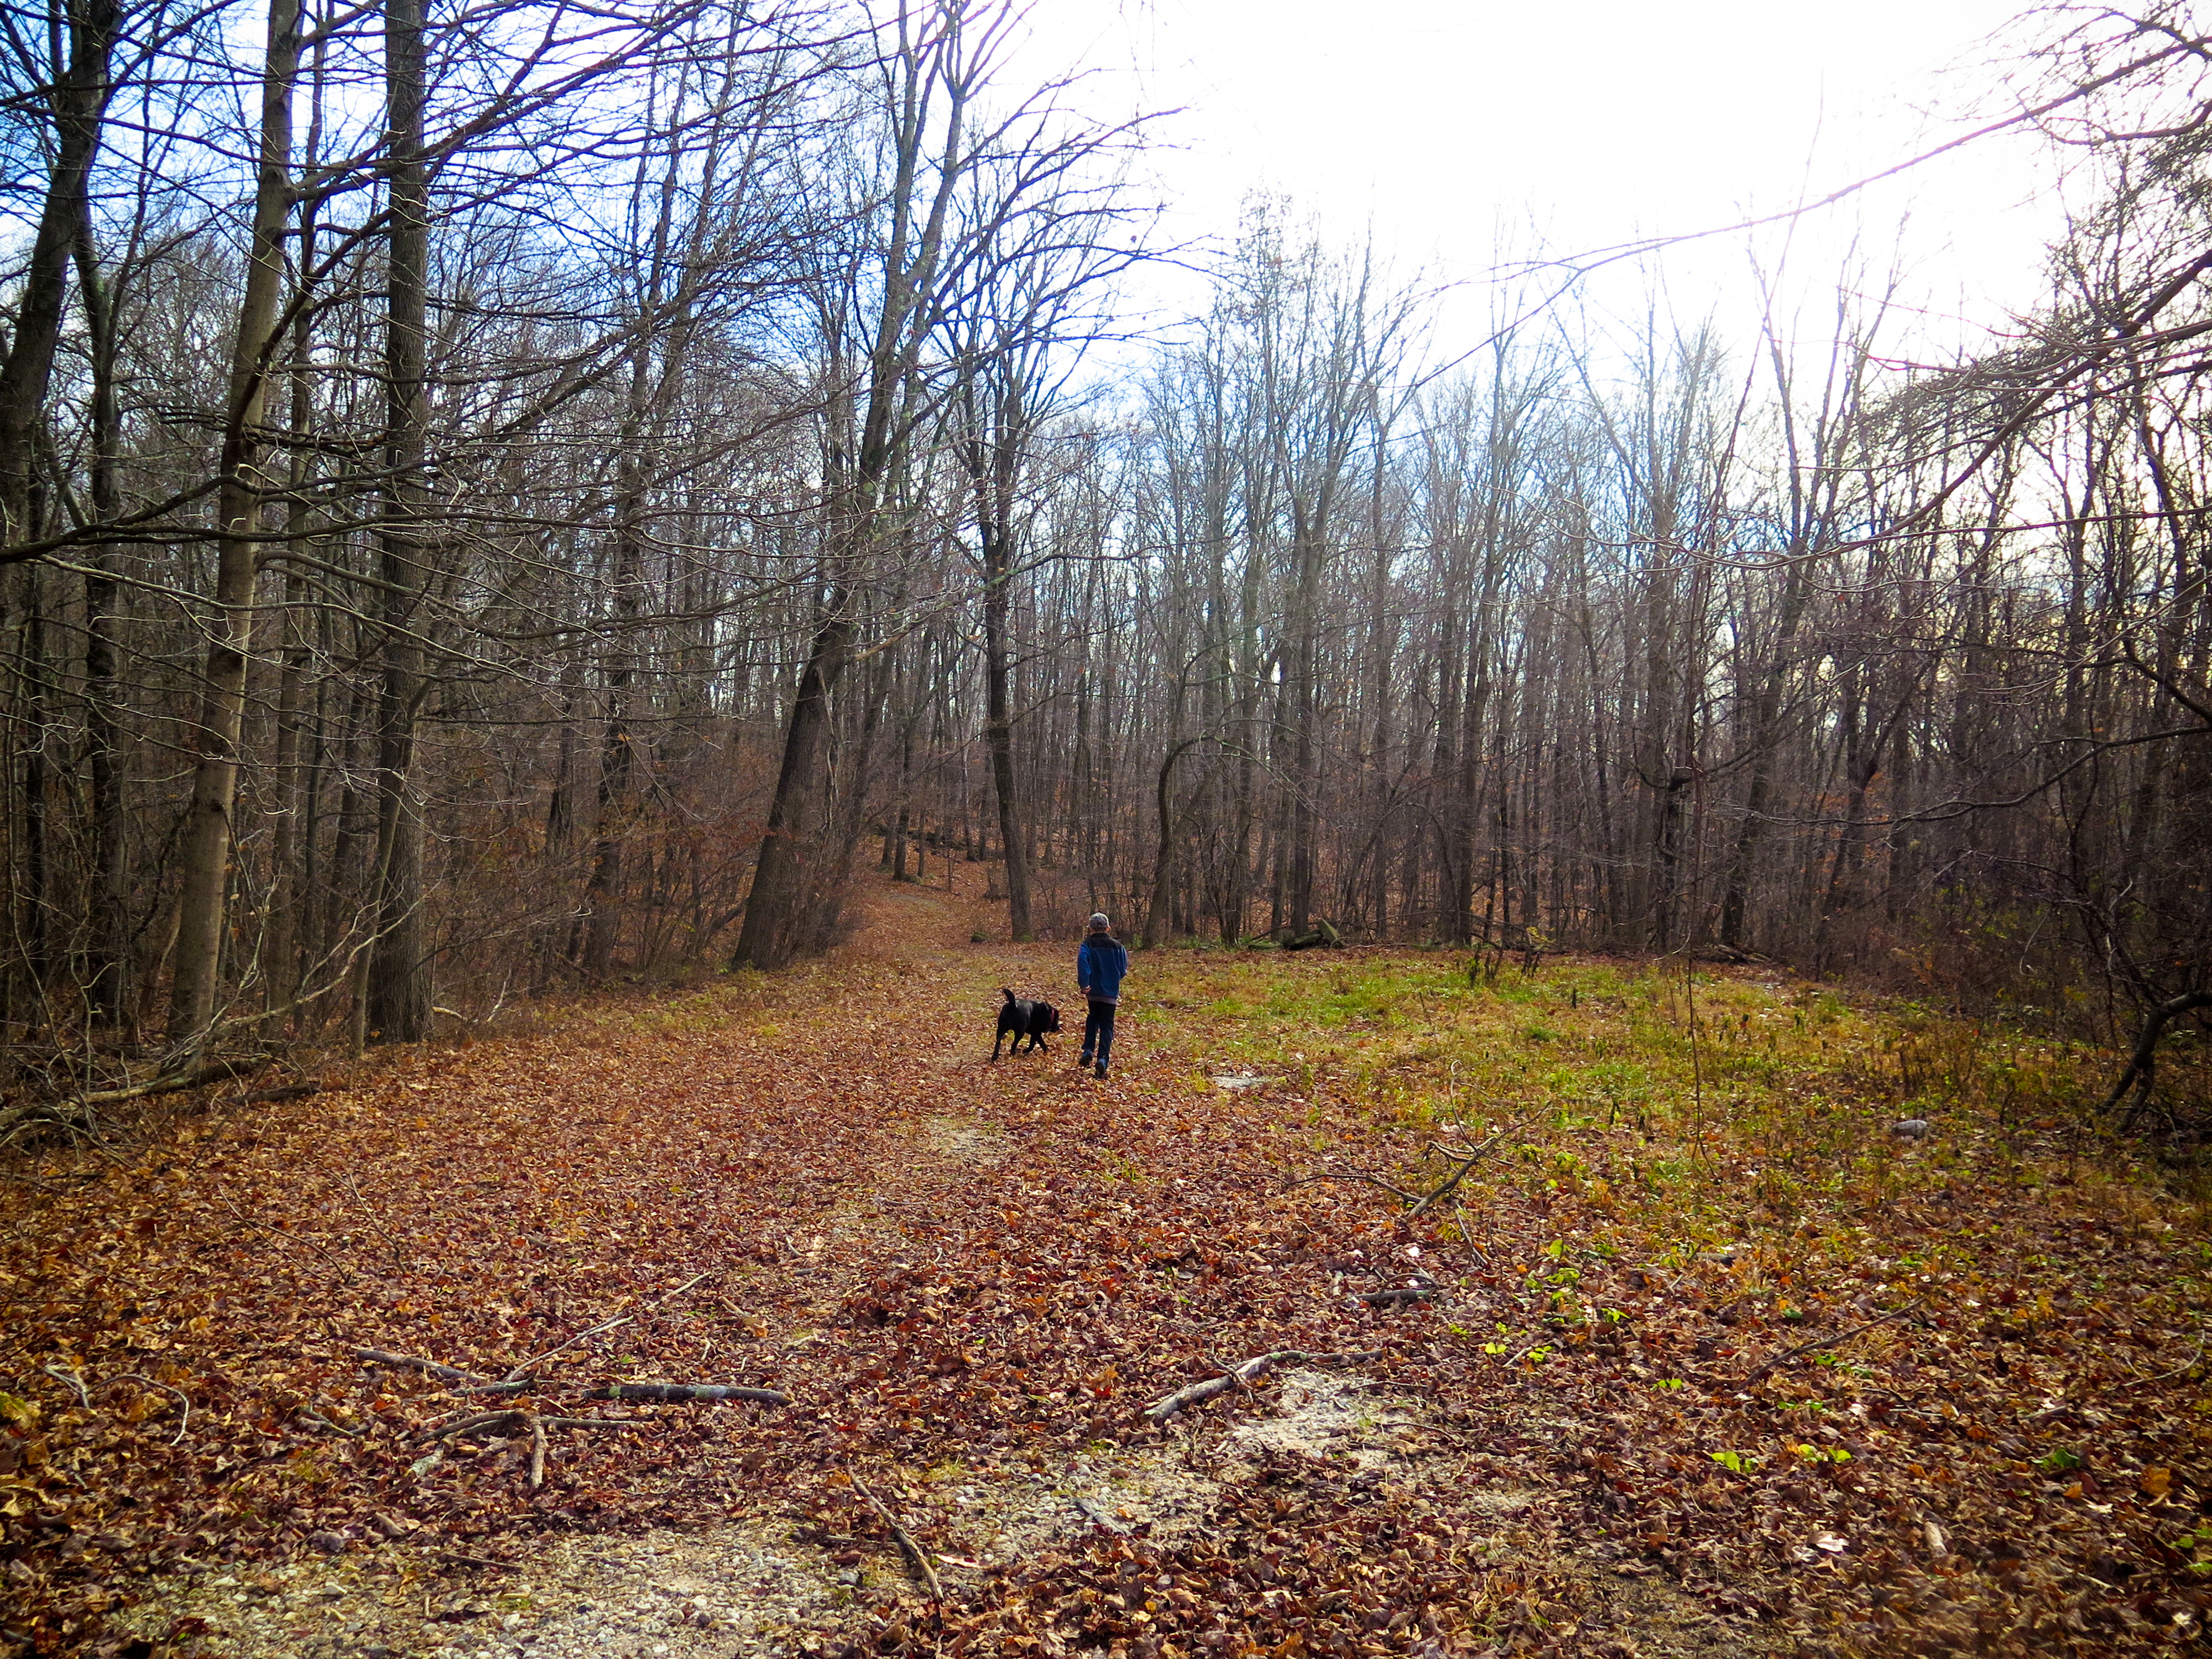 OptOutside Hike at EKHNP 11-27-15 - Aiden with Perry run ahead